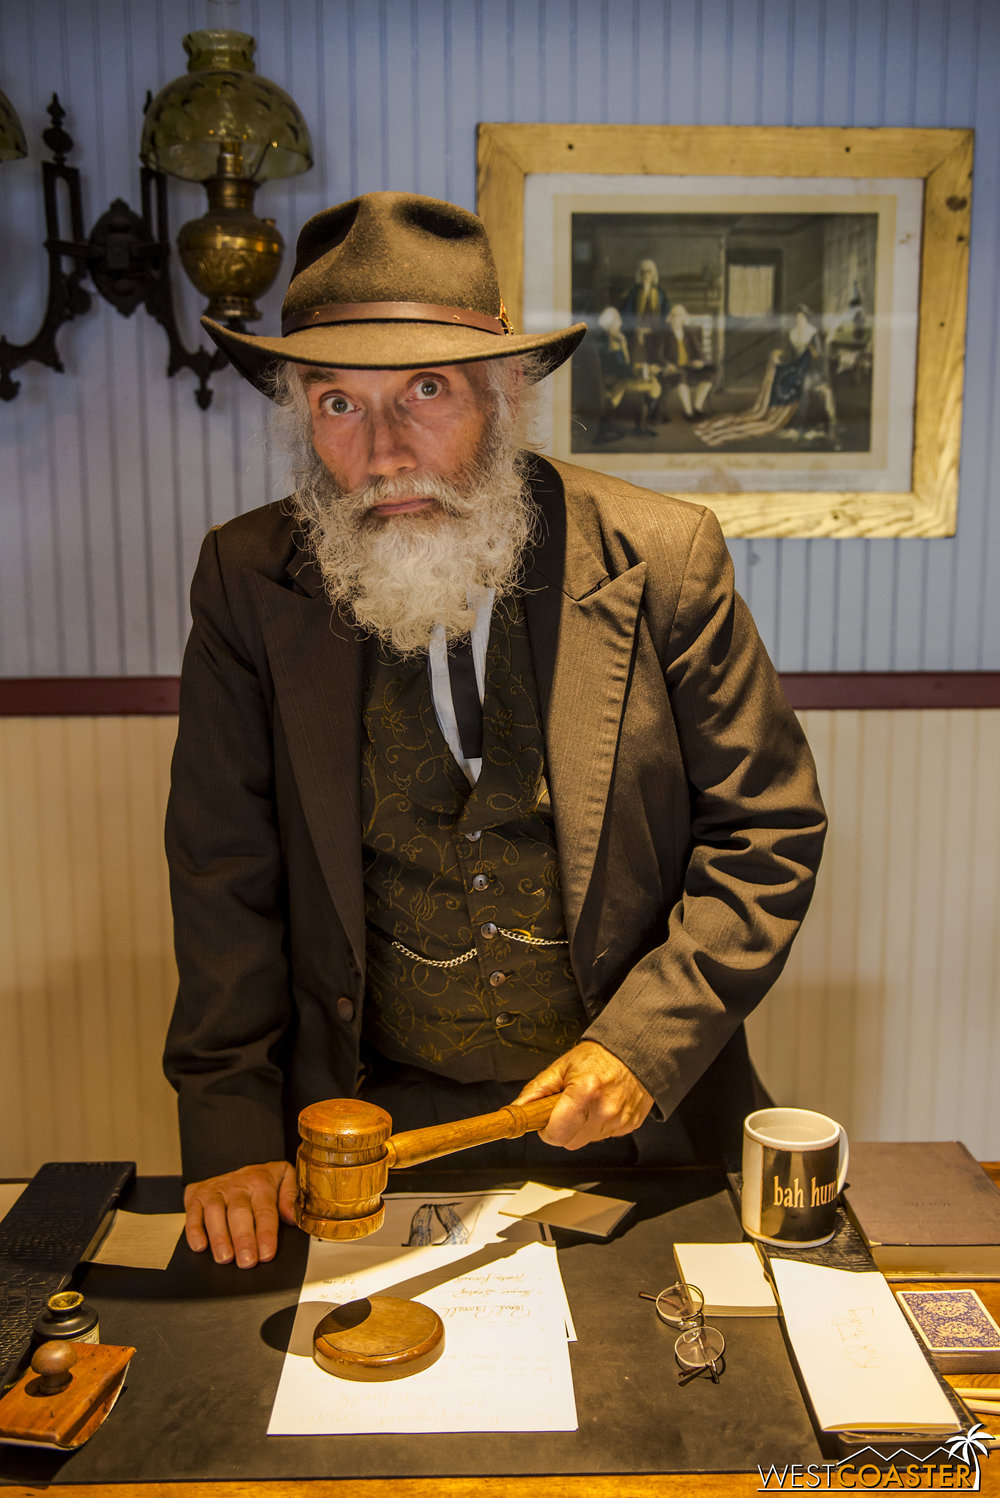 Calico's Judge Roy Bean lays down the law at Town Hall.